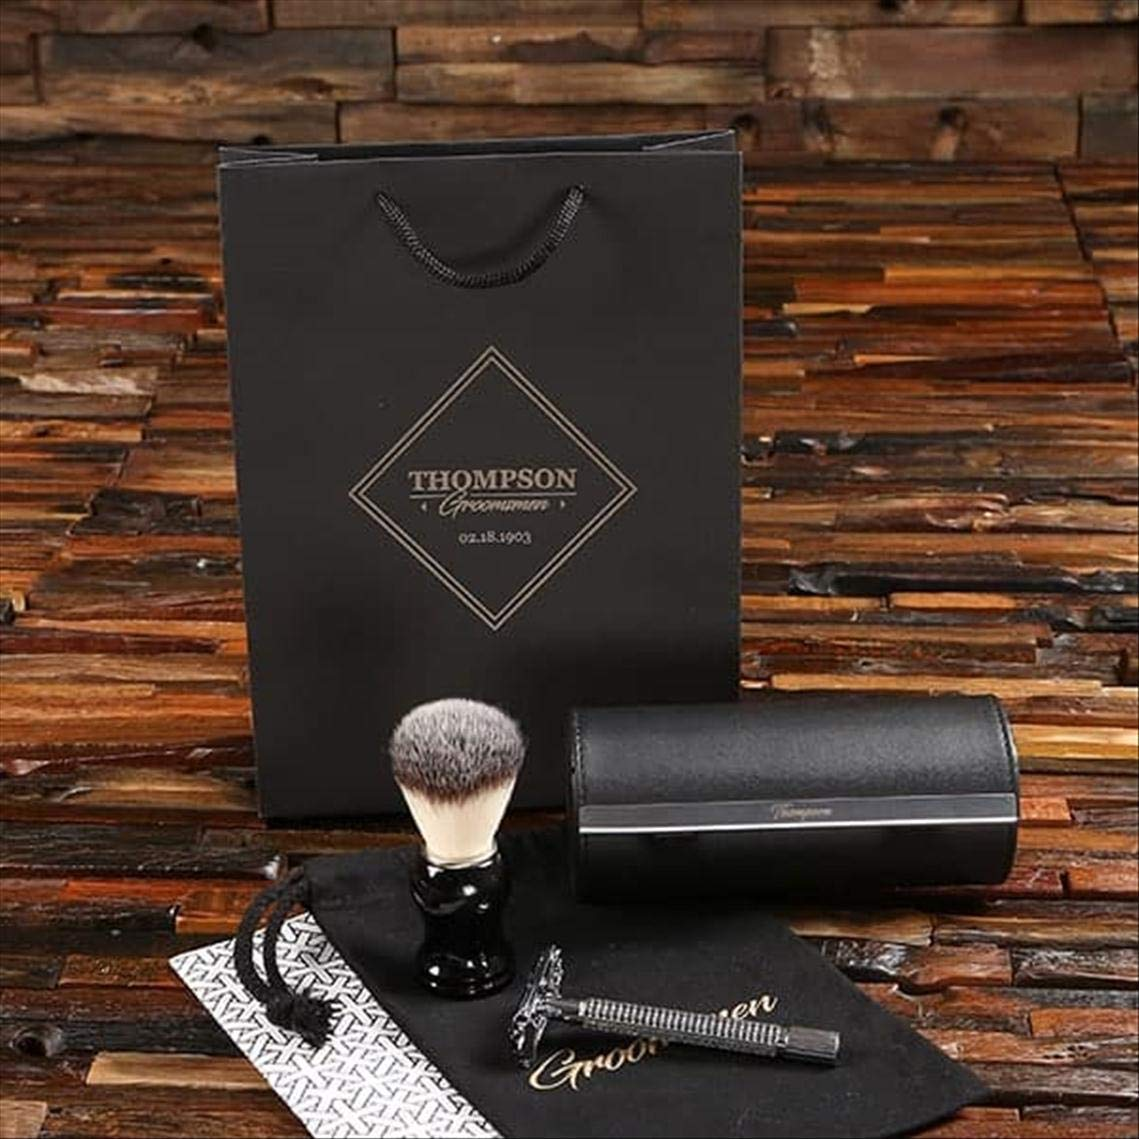 Mad men travel shaving set - classic stainless Steel Shaver in Faux Leather Travel case